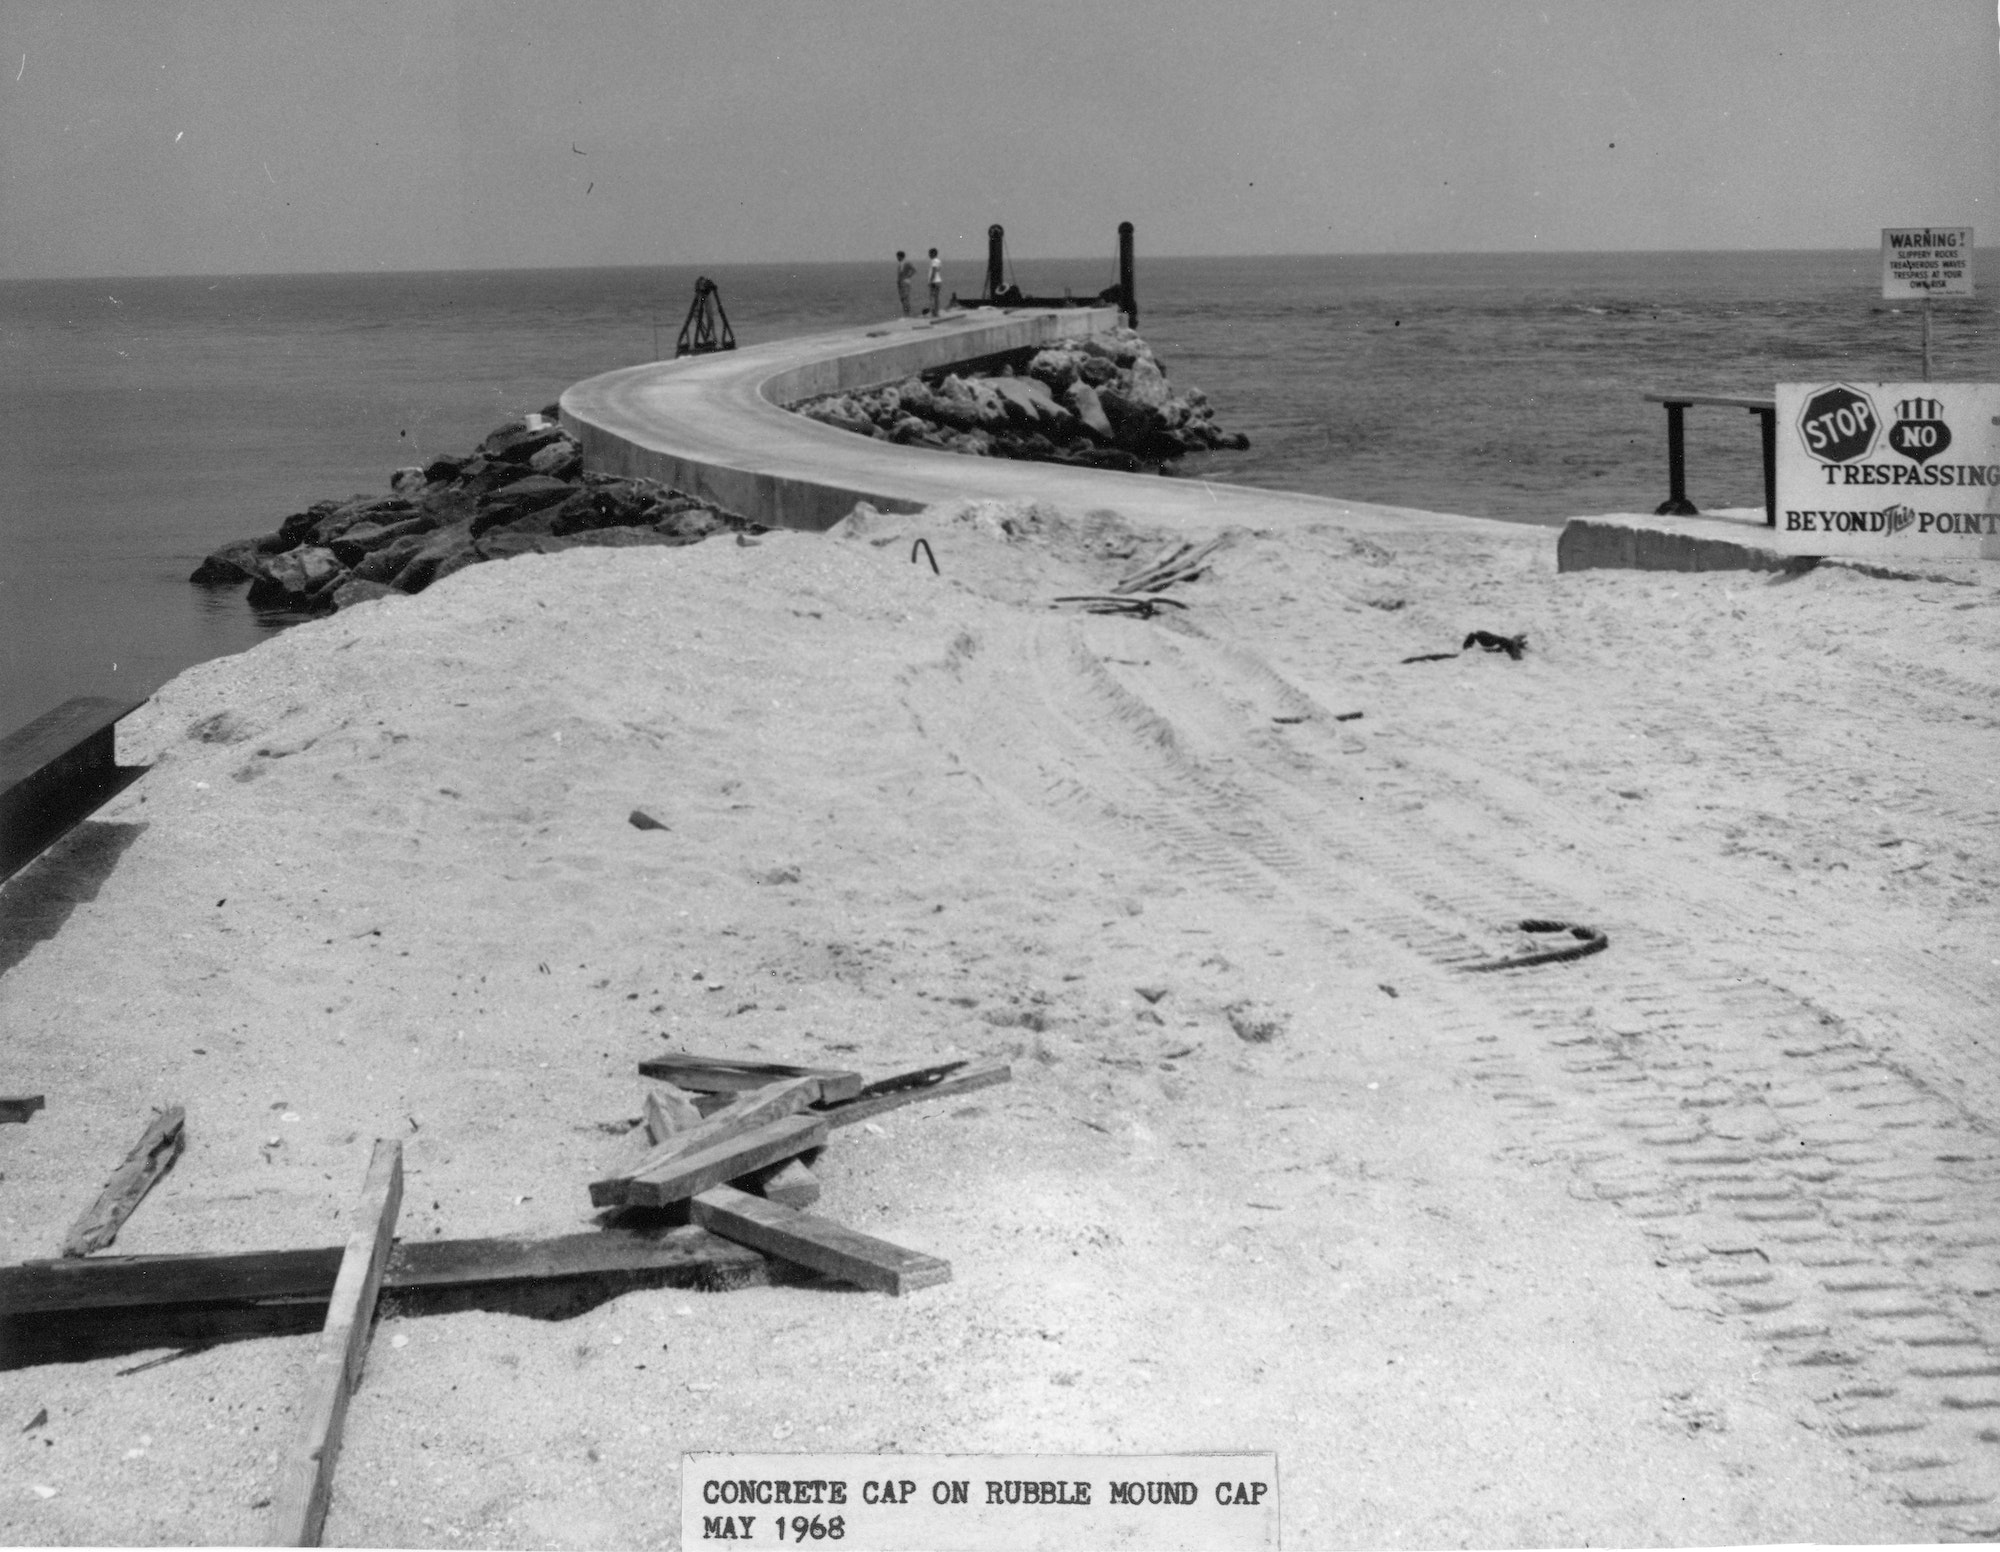 view of north jetty construction site in 1968 as it begins to jut out into the ocean